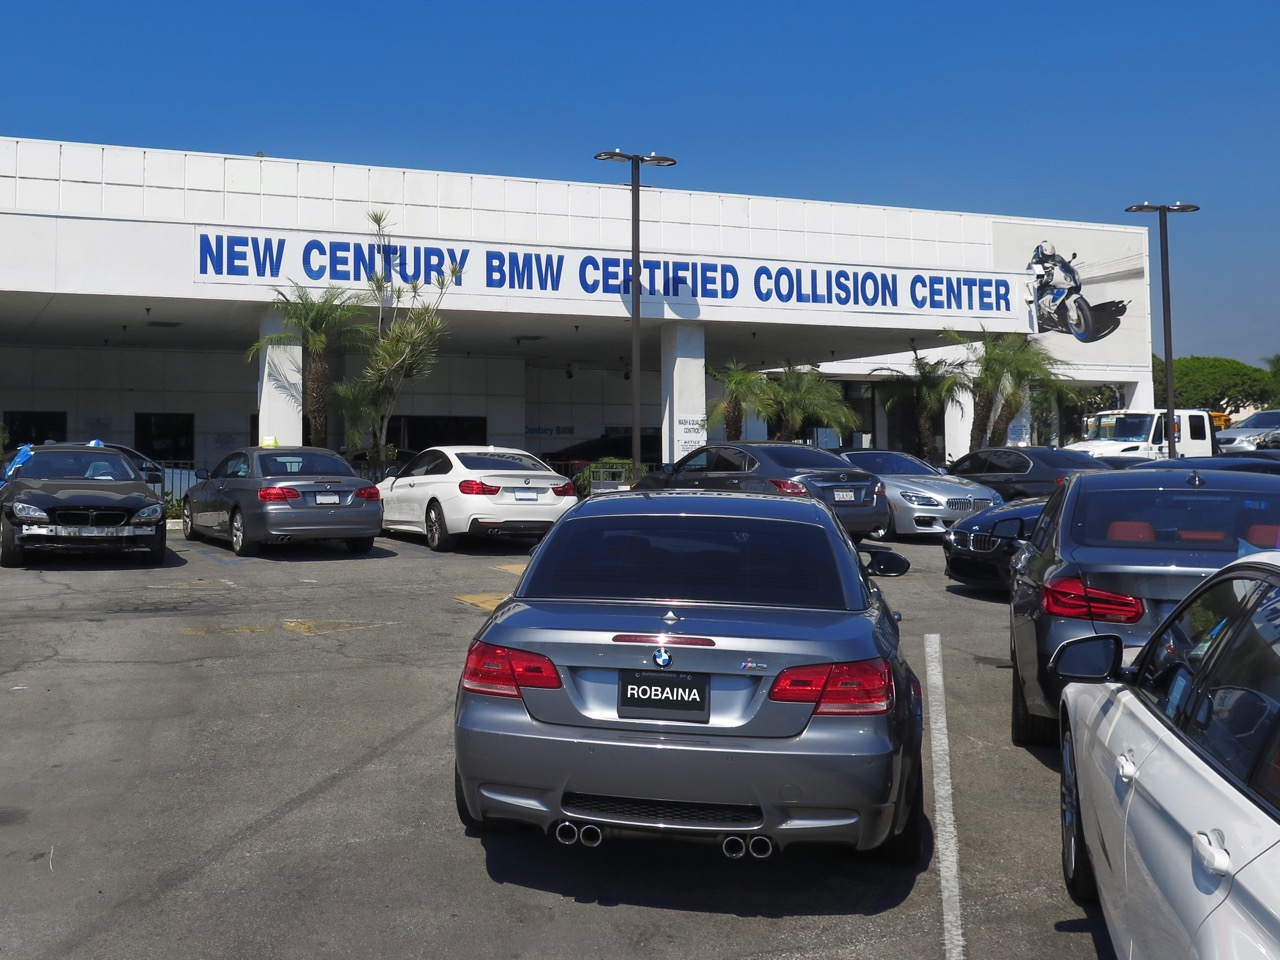 New Century BMW >> Eco Repair Changes the Way BMW Collision Center Fixes Cars | Newswire